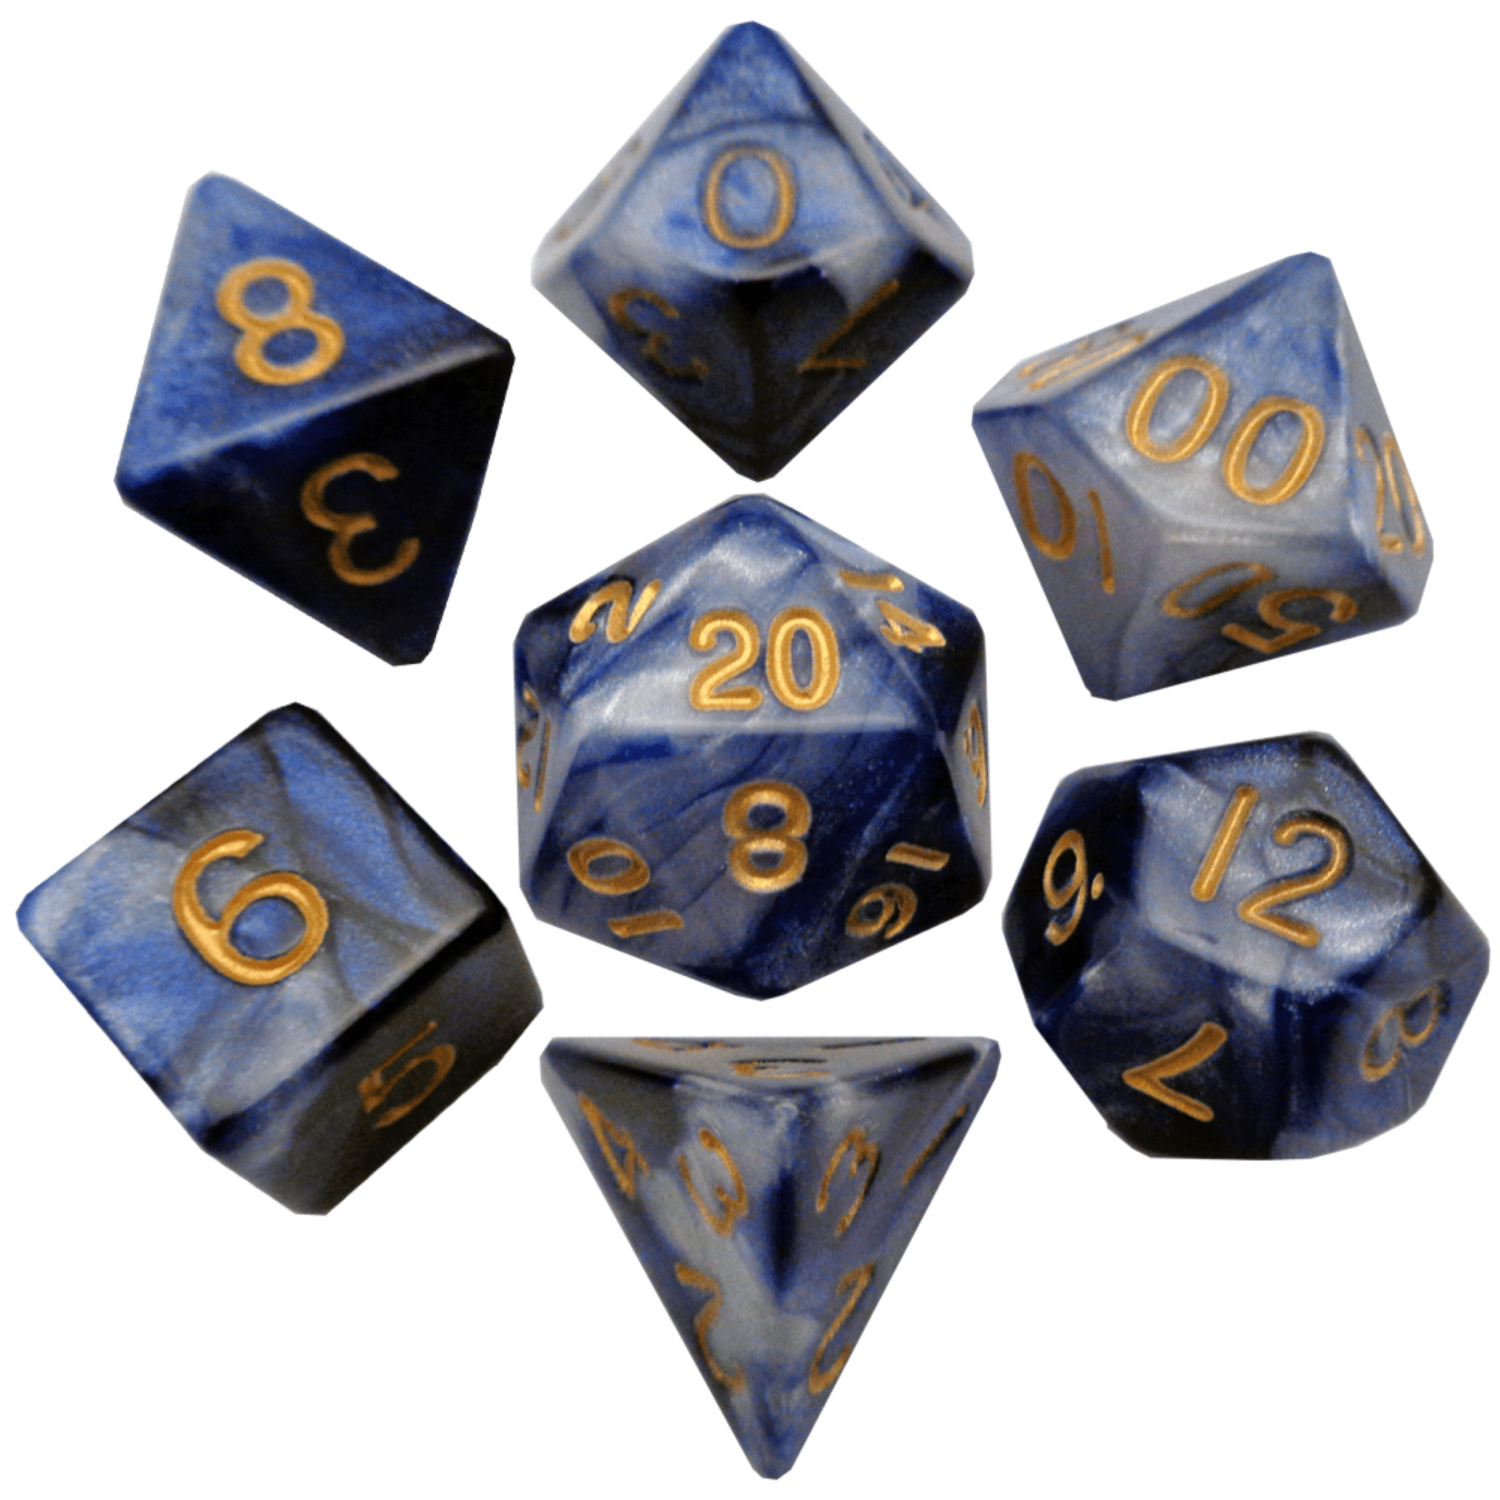 Blue/White with Gold Numbers 16mm Polyhedral Dice Set